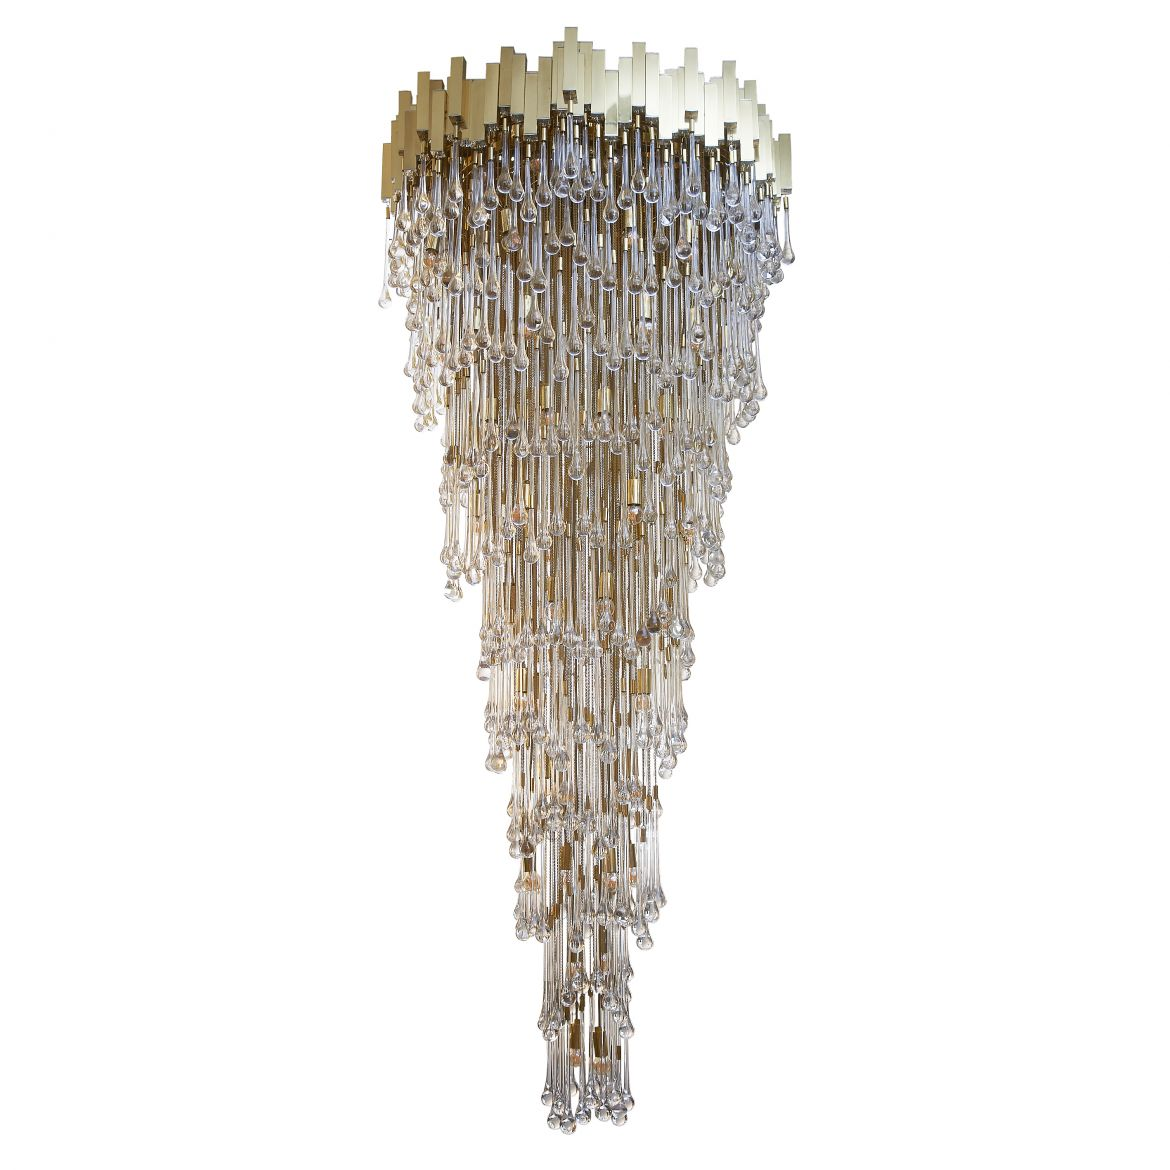 Italian Glass Cascading Chandelier